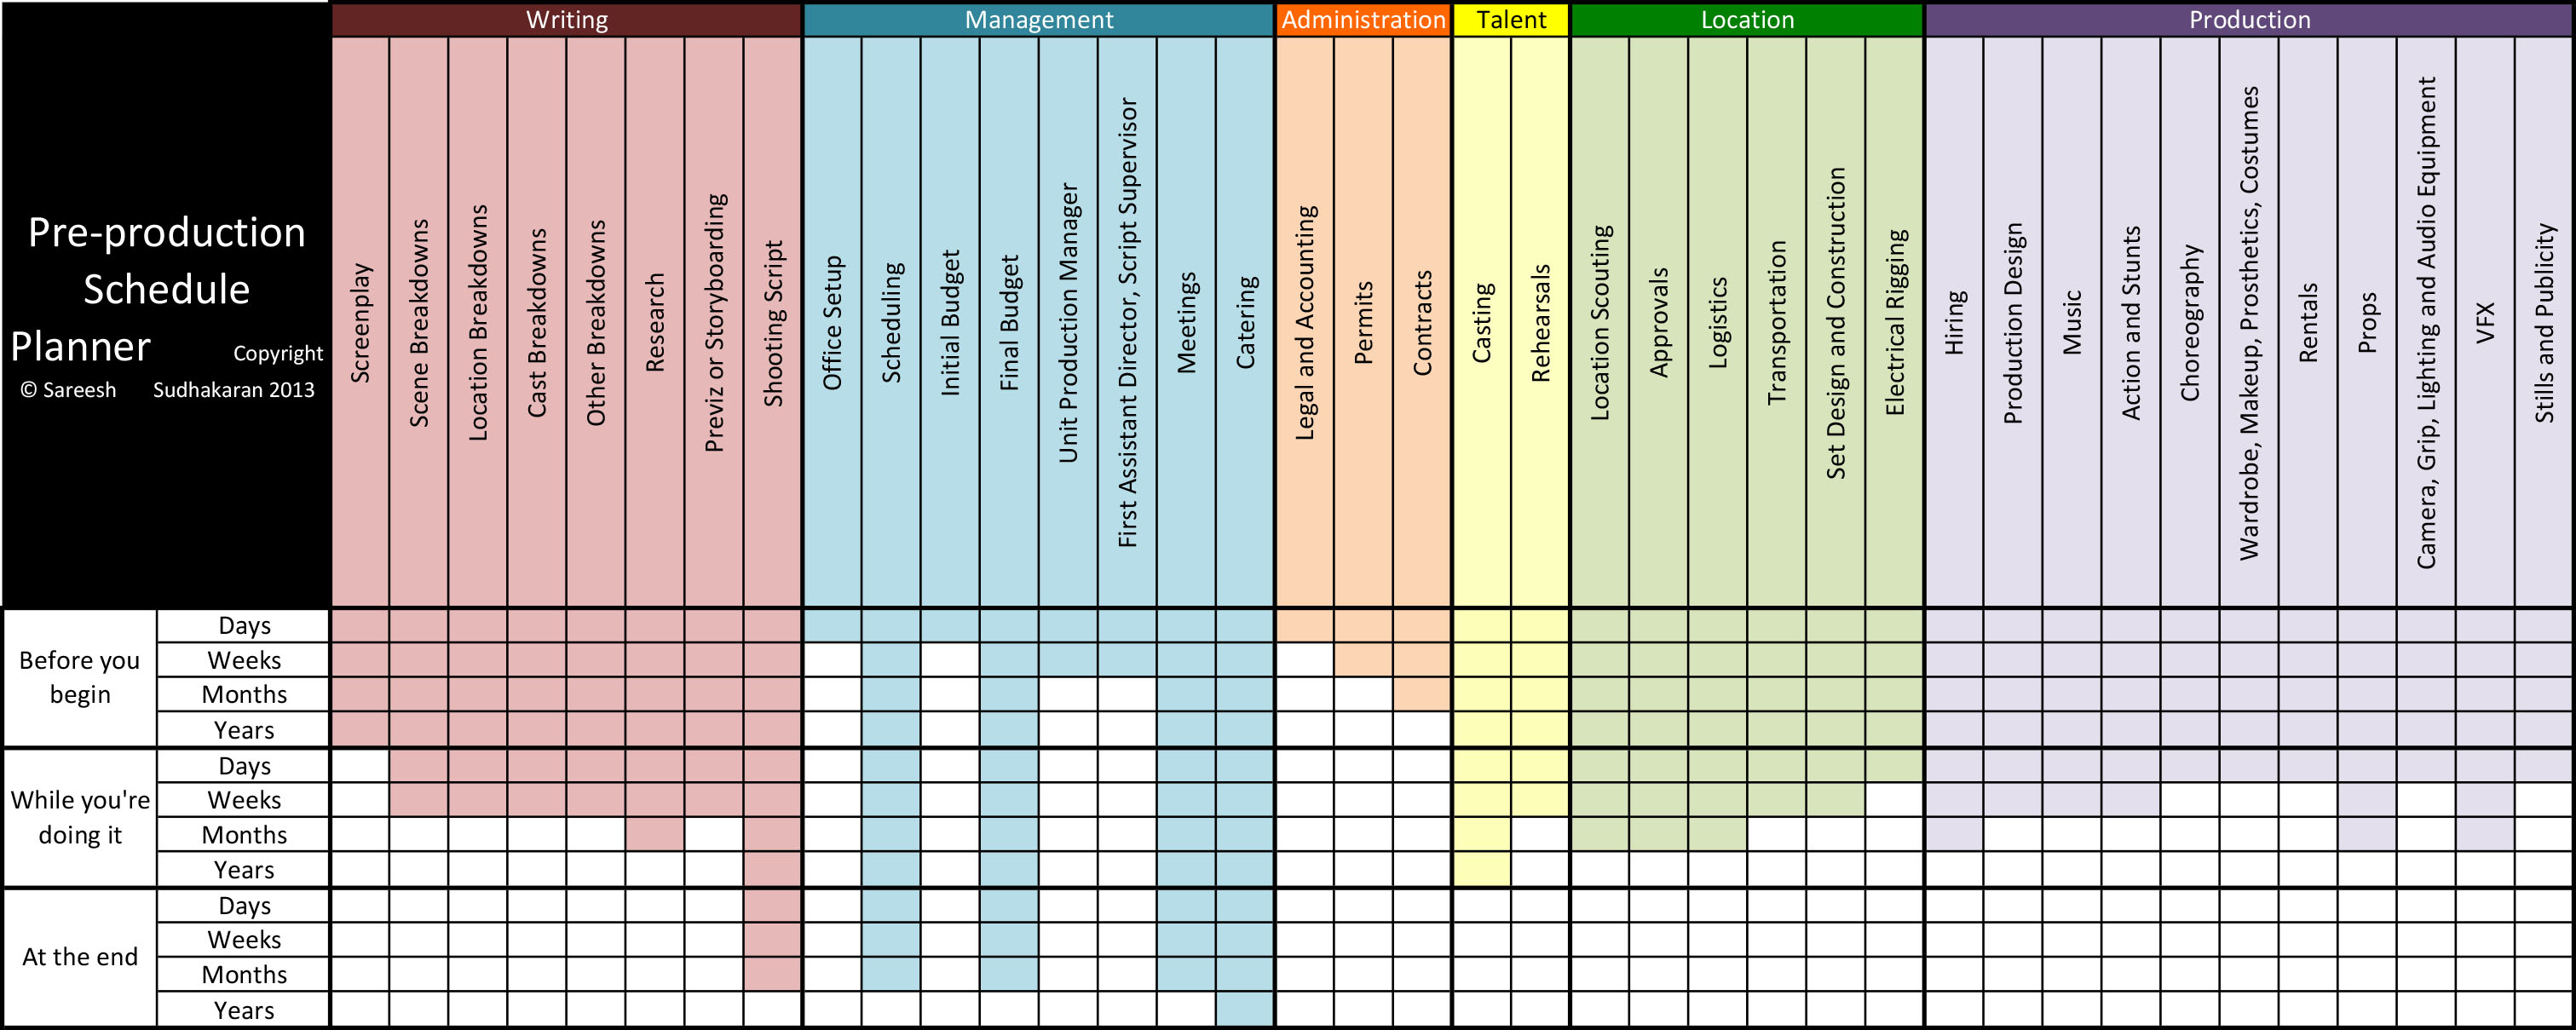 Production Schedule Template Excel Choice Image Templates